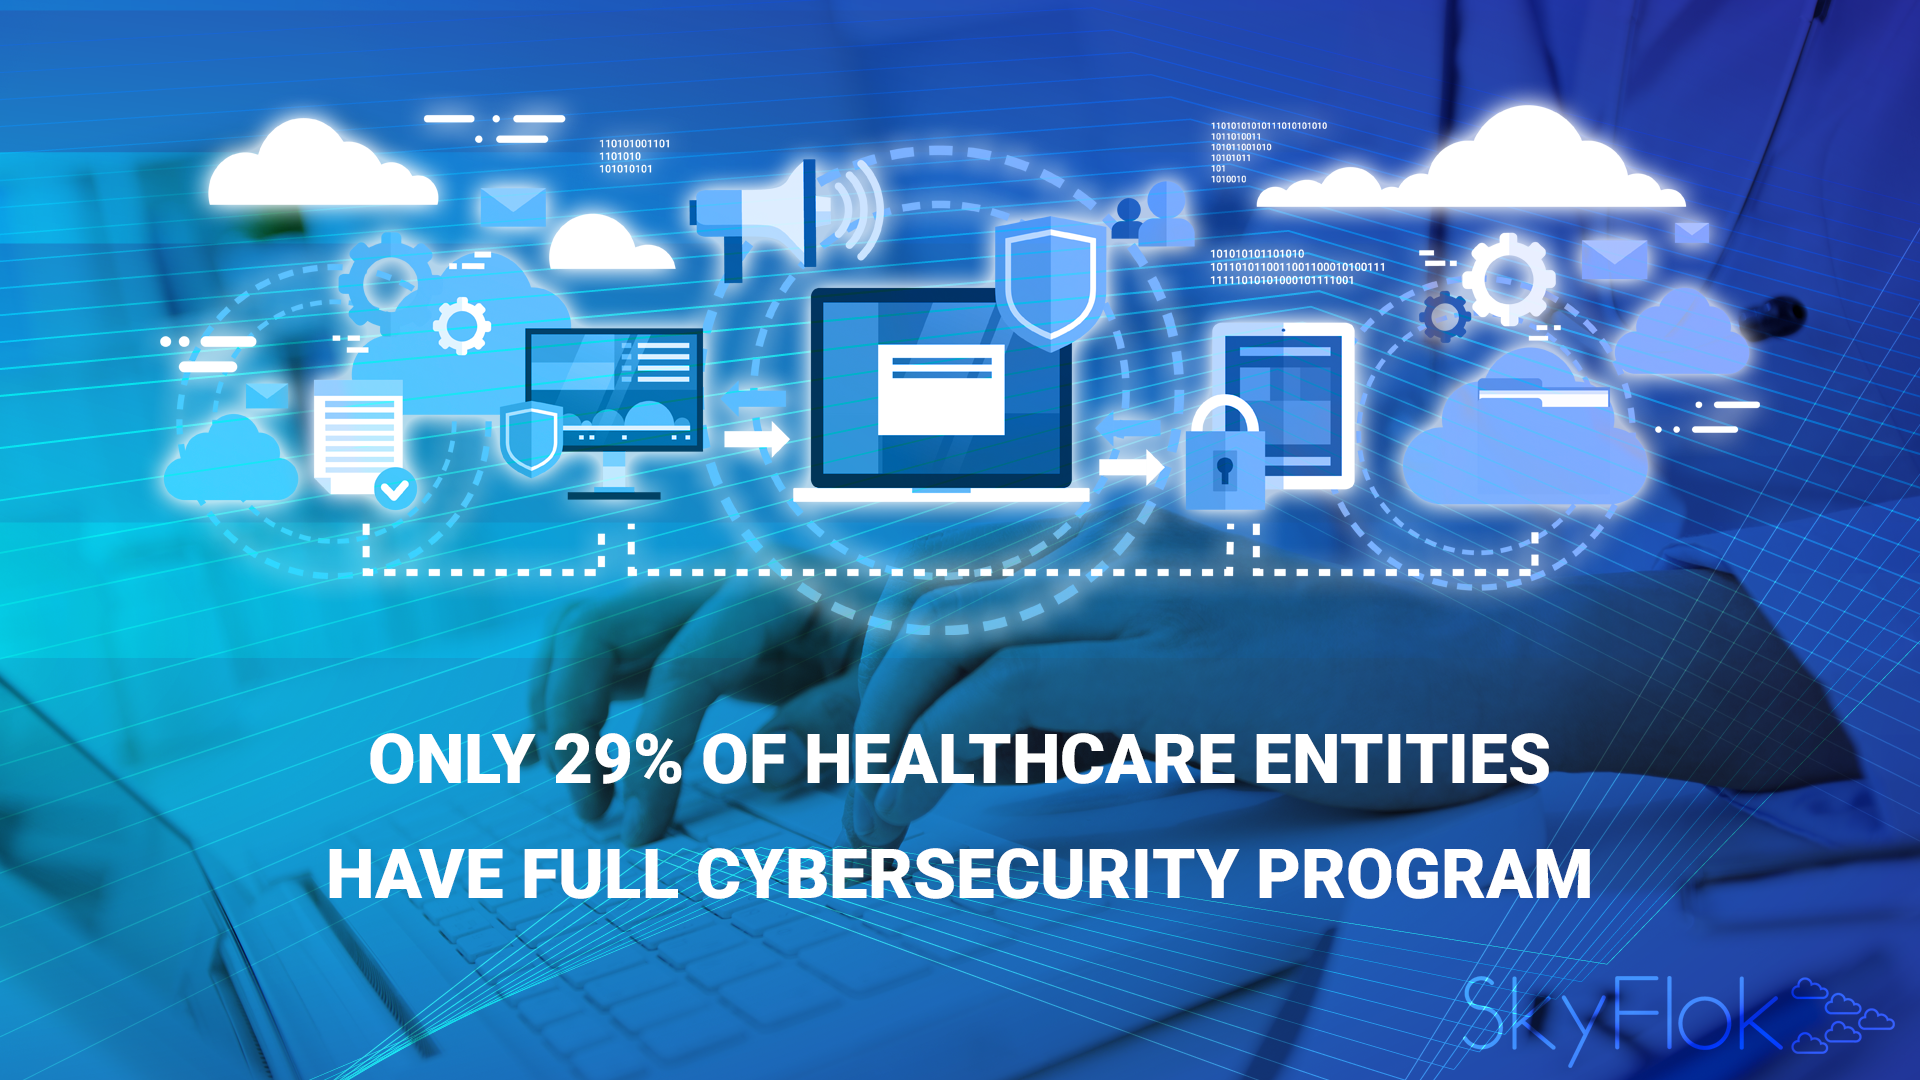 Only 29% of Healthcare Entities Have Full Cybersecurity Program